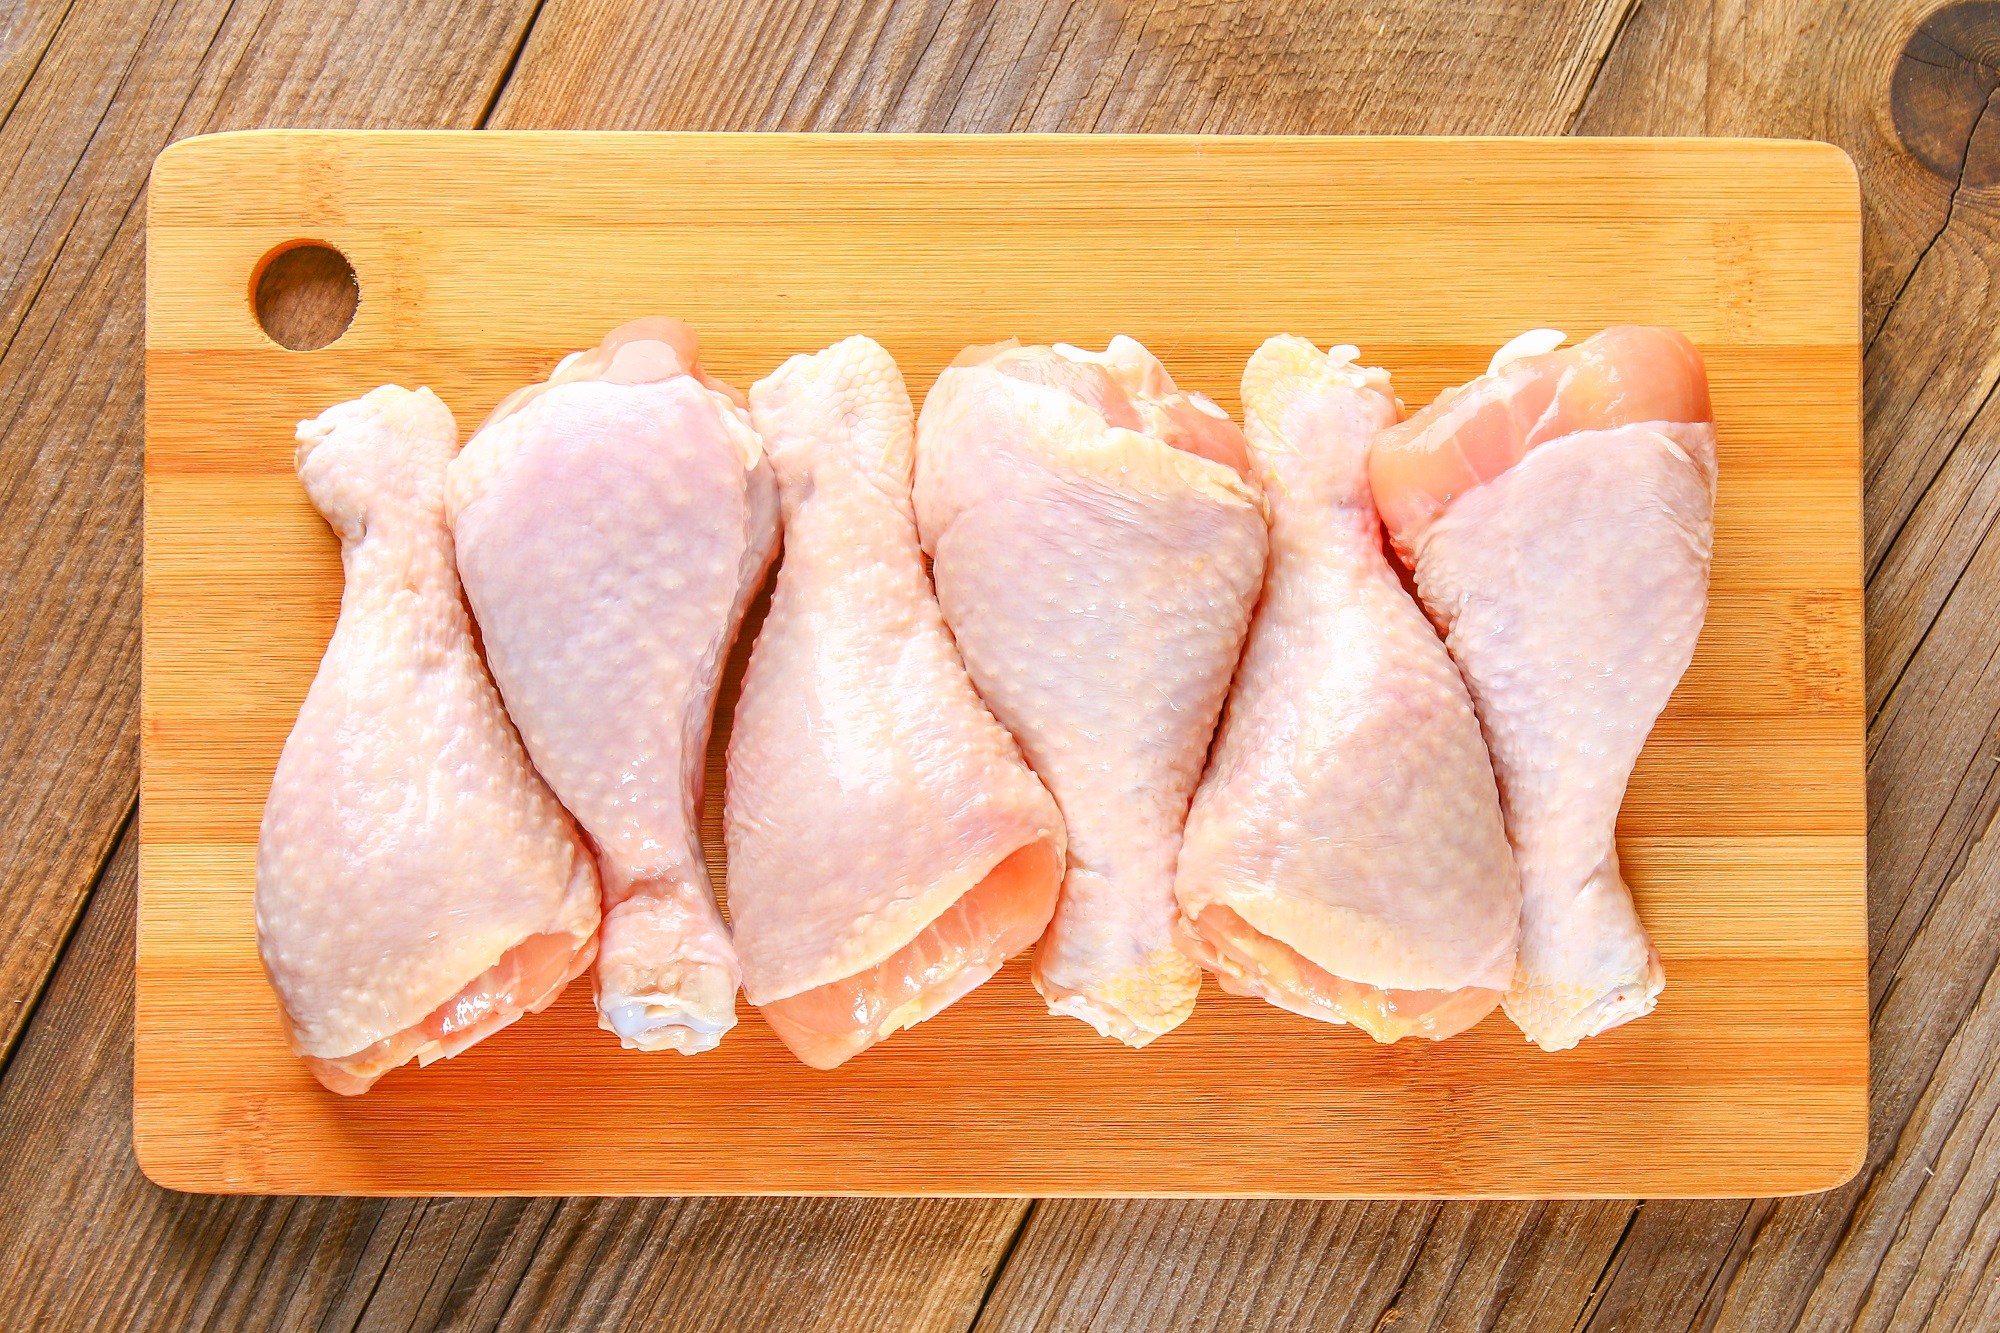 Raw Chicken Legs on Wooden Cutting Board